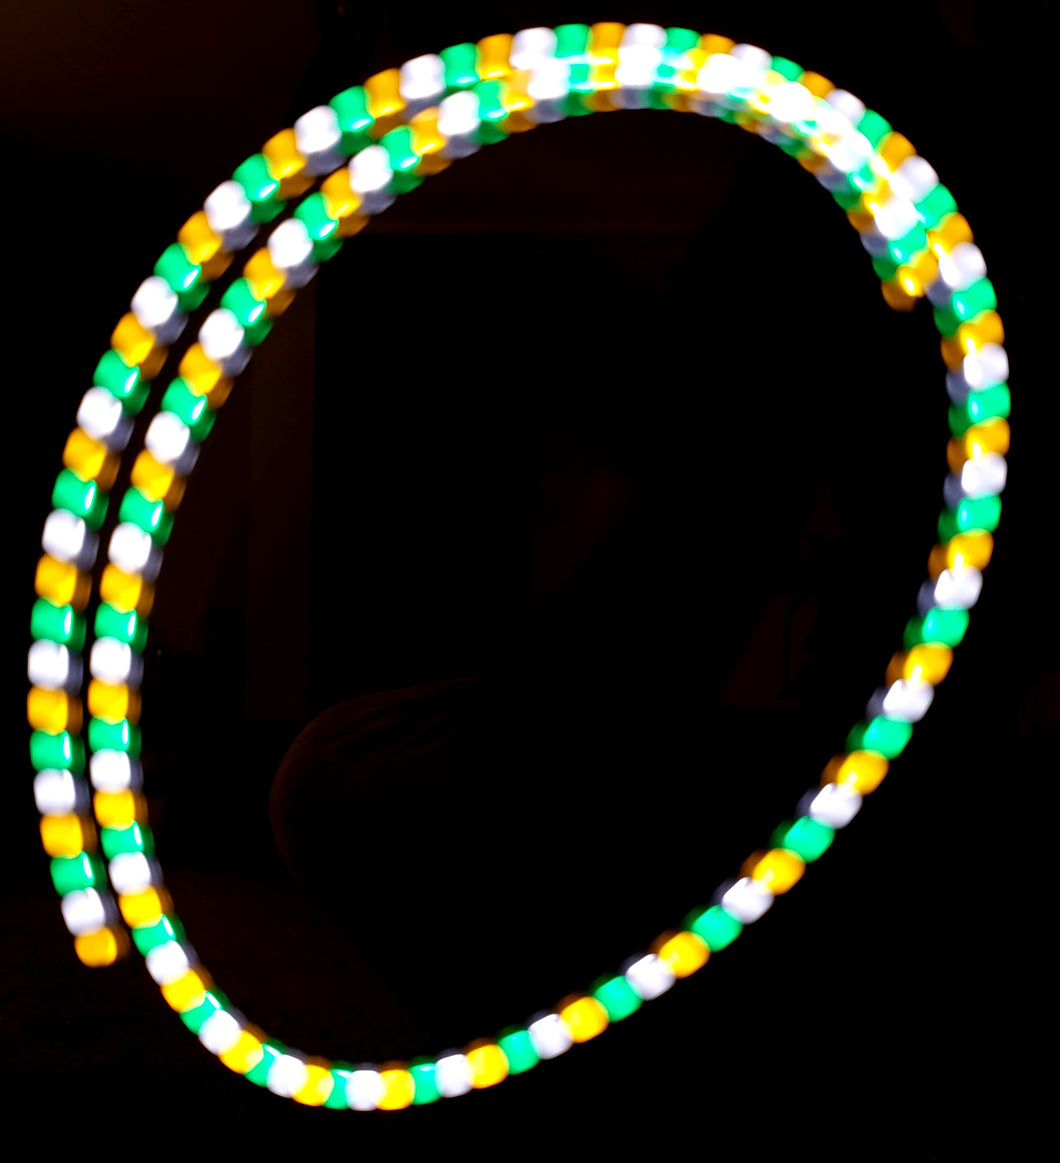 3-Color Strobe: Gold/White/Turquoise